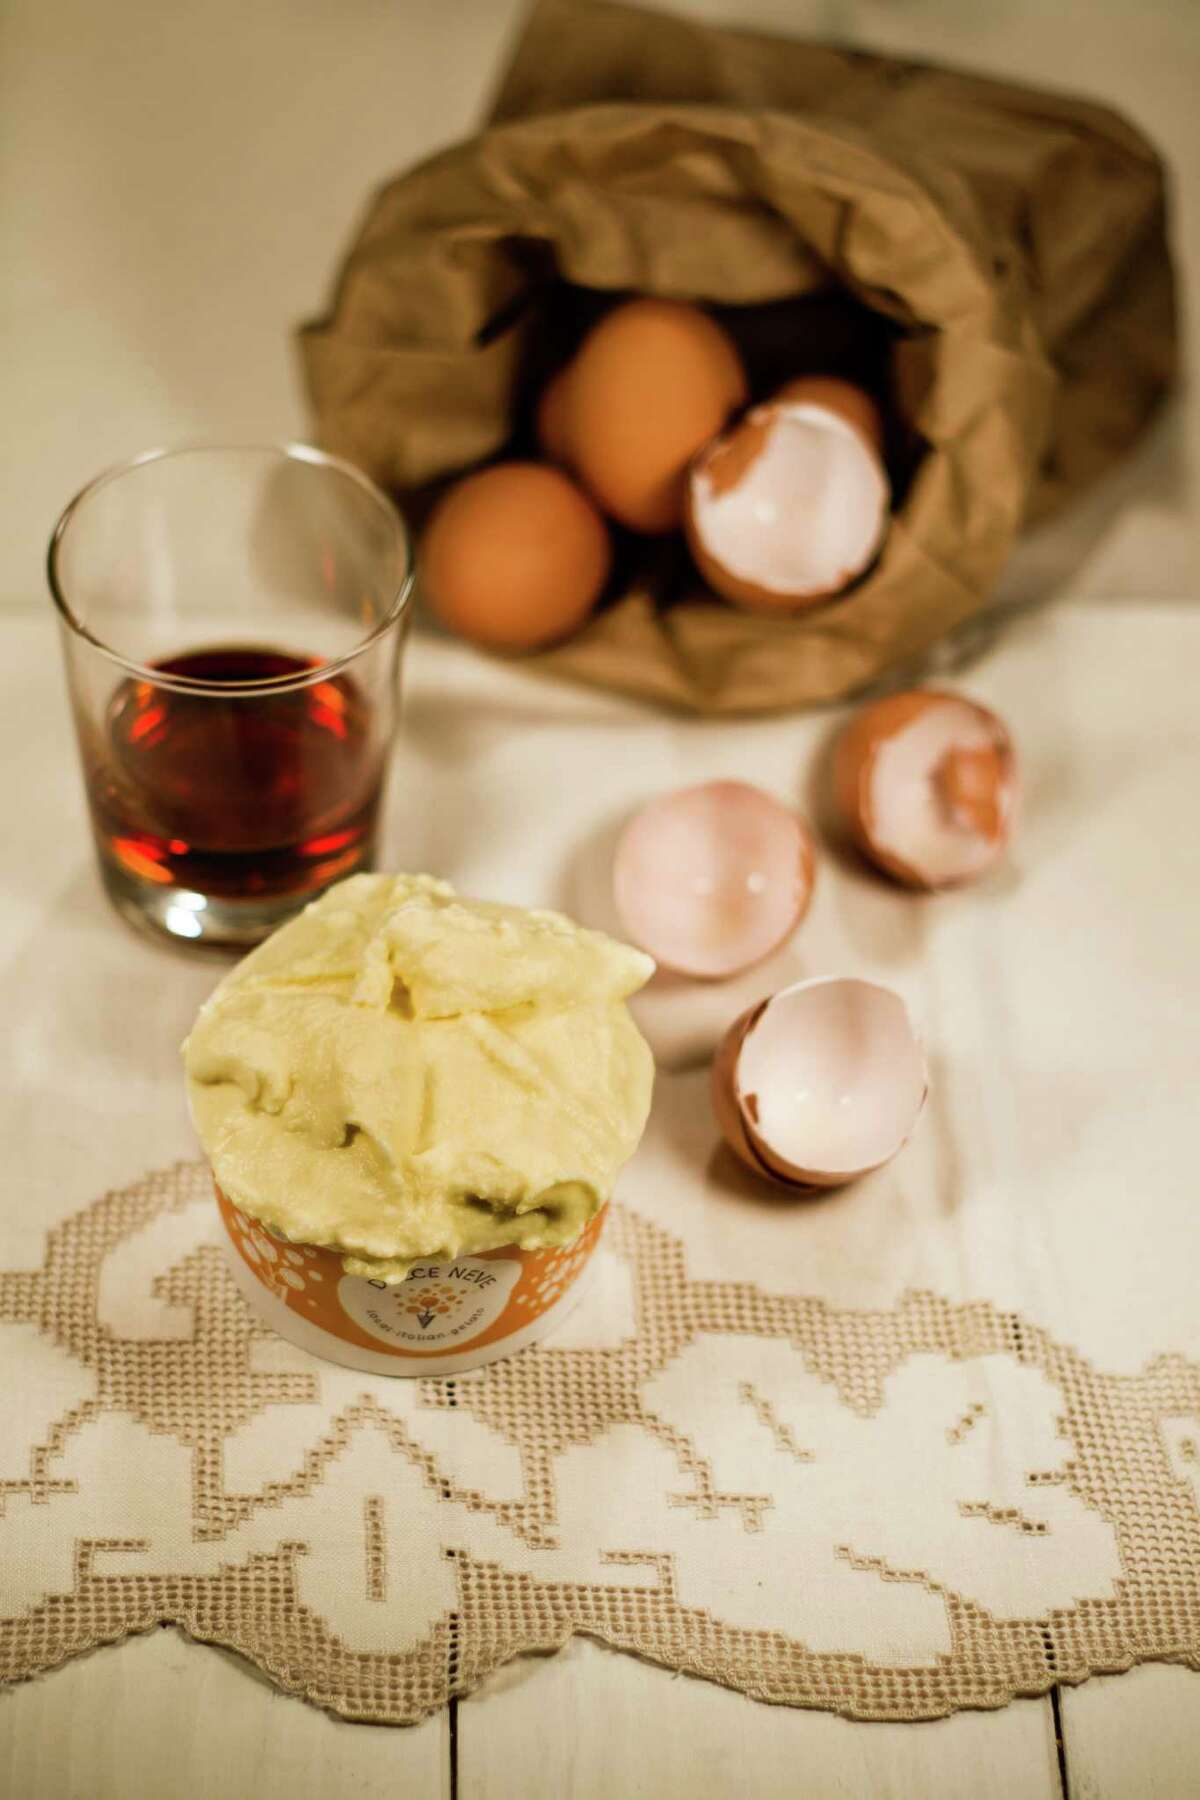 austin gelato shop Dolce Neve will hold a pop-up at Morningstar, 4721 N. Main, Houston, on Feb. 19 from 2 to 4 p.m. The pop-up is a preview of the store Dolce Neve will open in Spring 2017 in the strip mall of the same address.